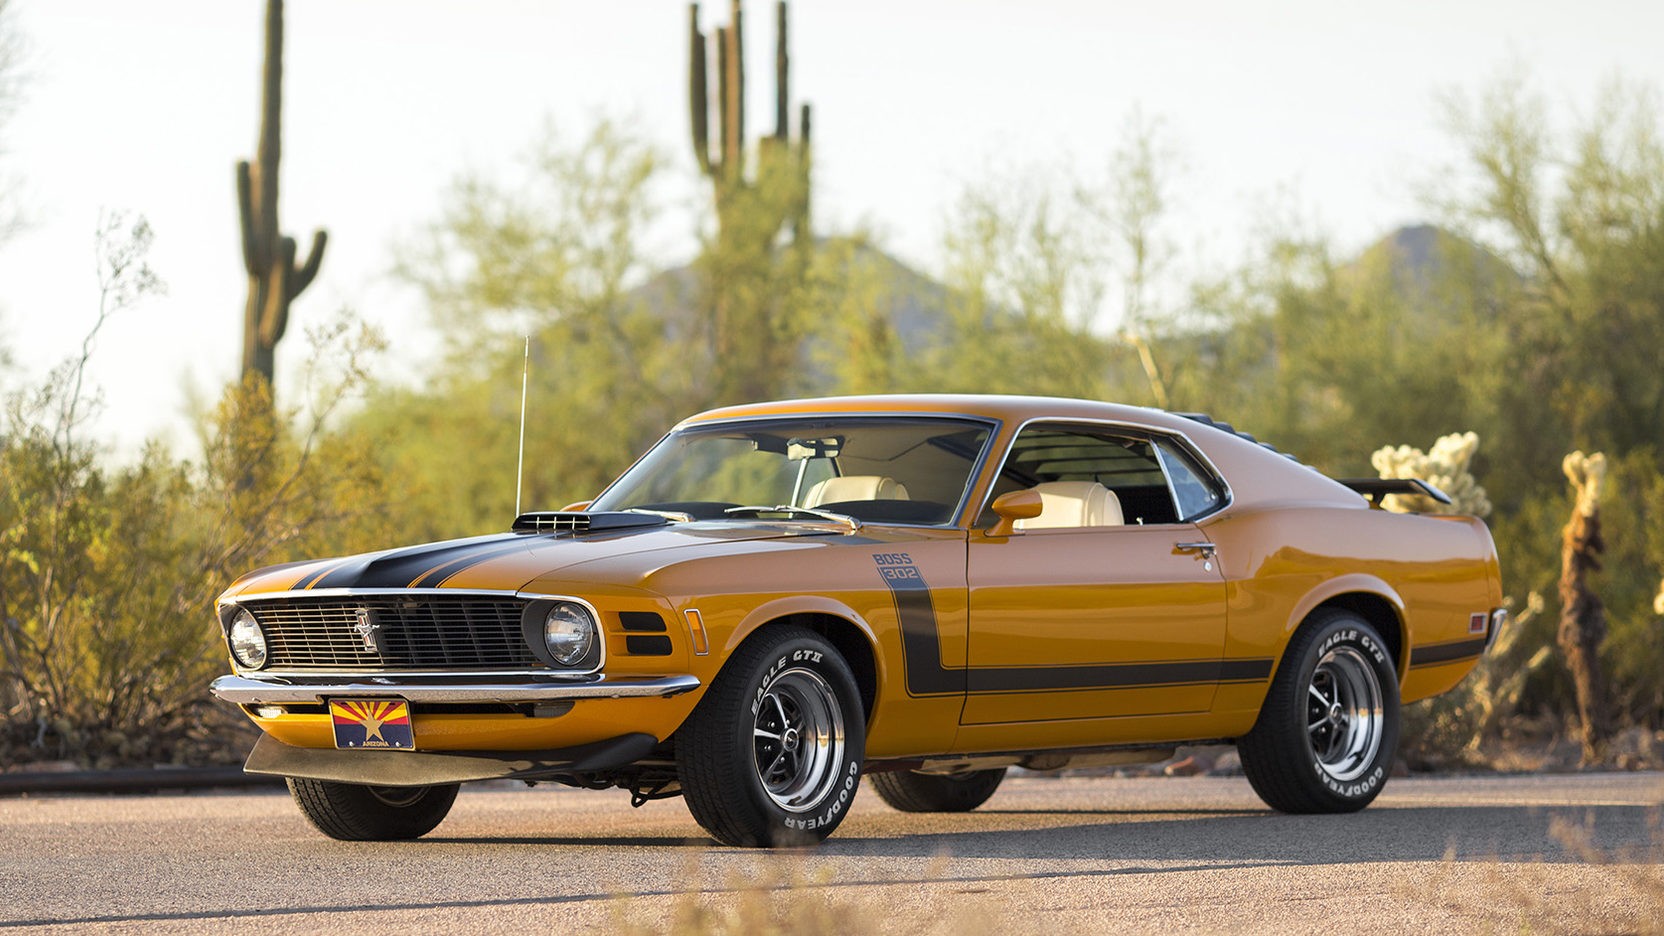 1970 Ford Mustang Boss 302 3/4 front